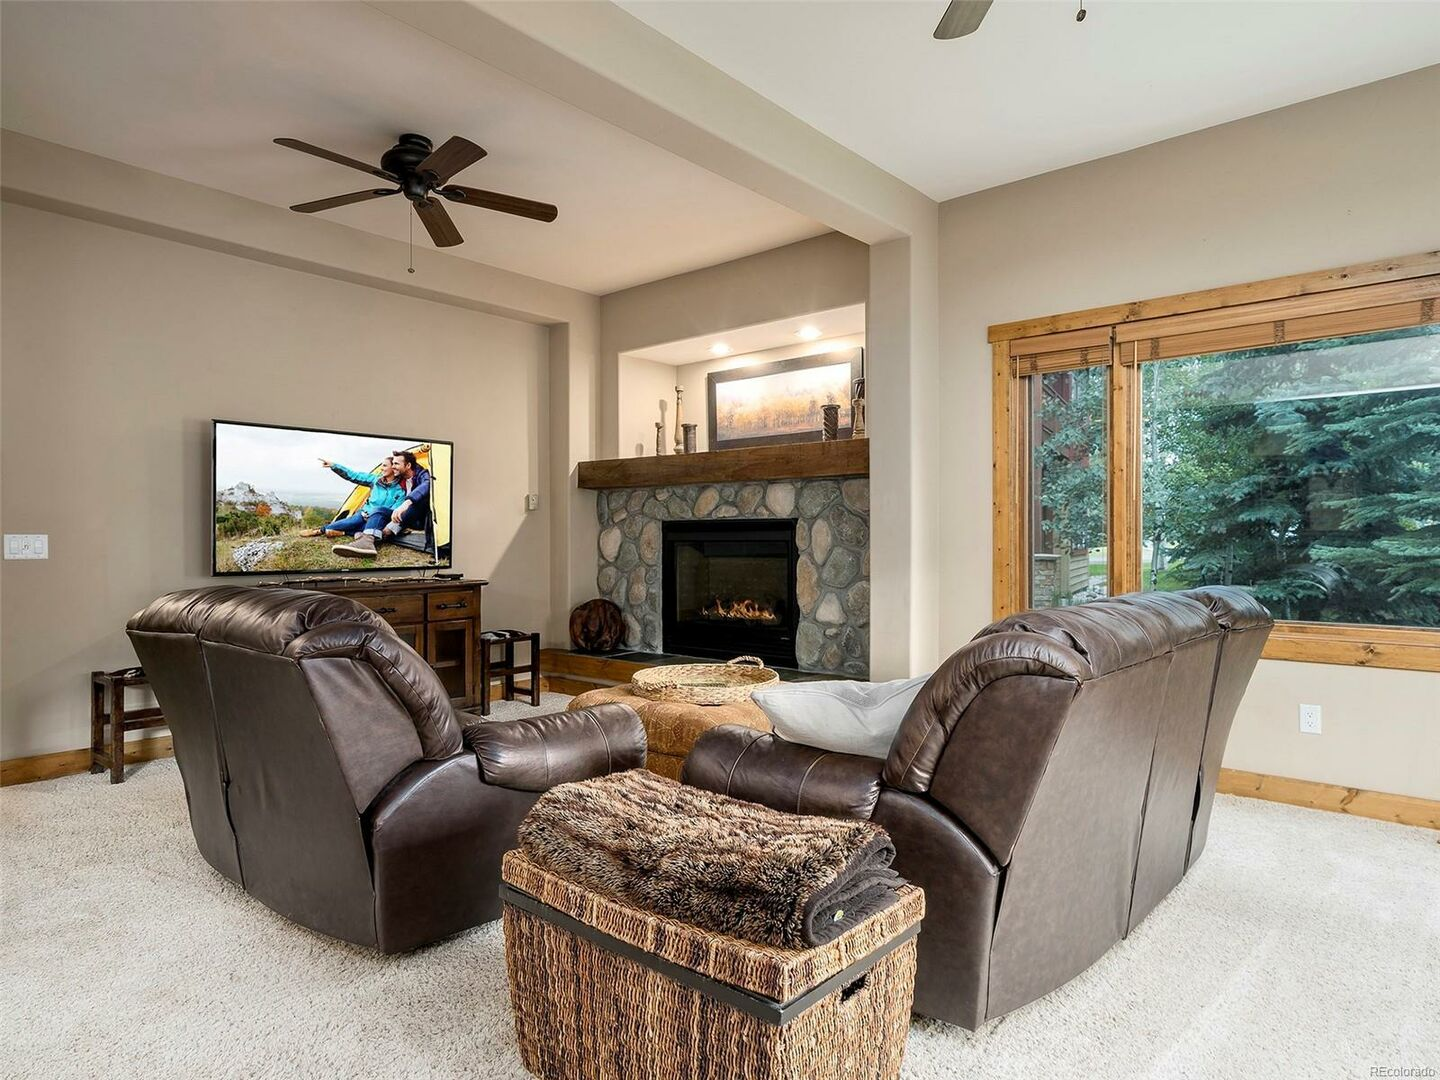 Living Area with Two Sofas, TV, Ceiling Fan, and Fireplace.